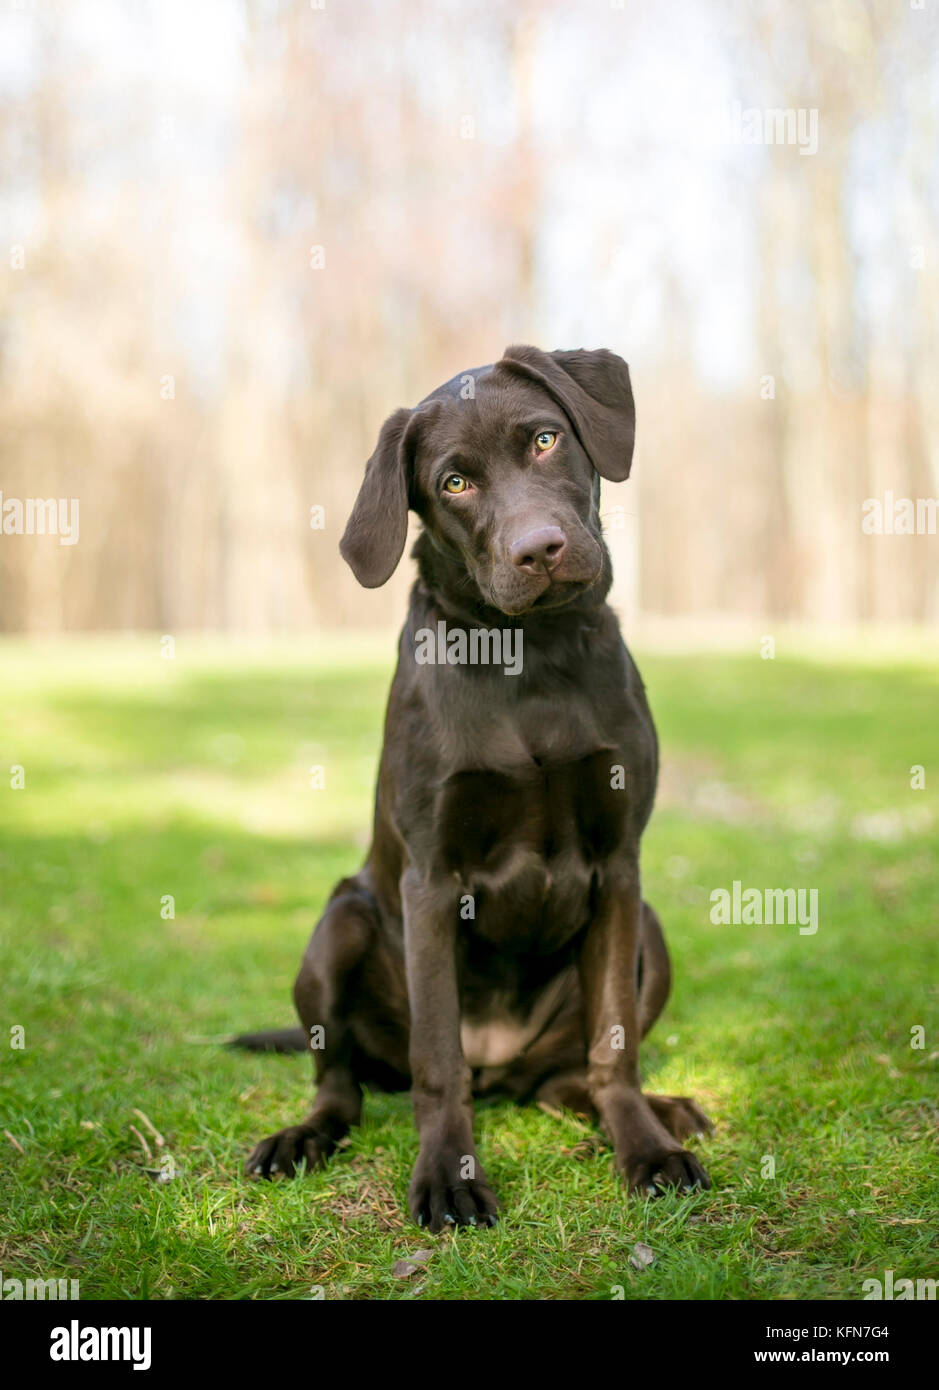 A Chocolate Labrador Retriever puppy sitting outdoors and listening with a head tilt - Stock Image